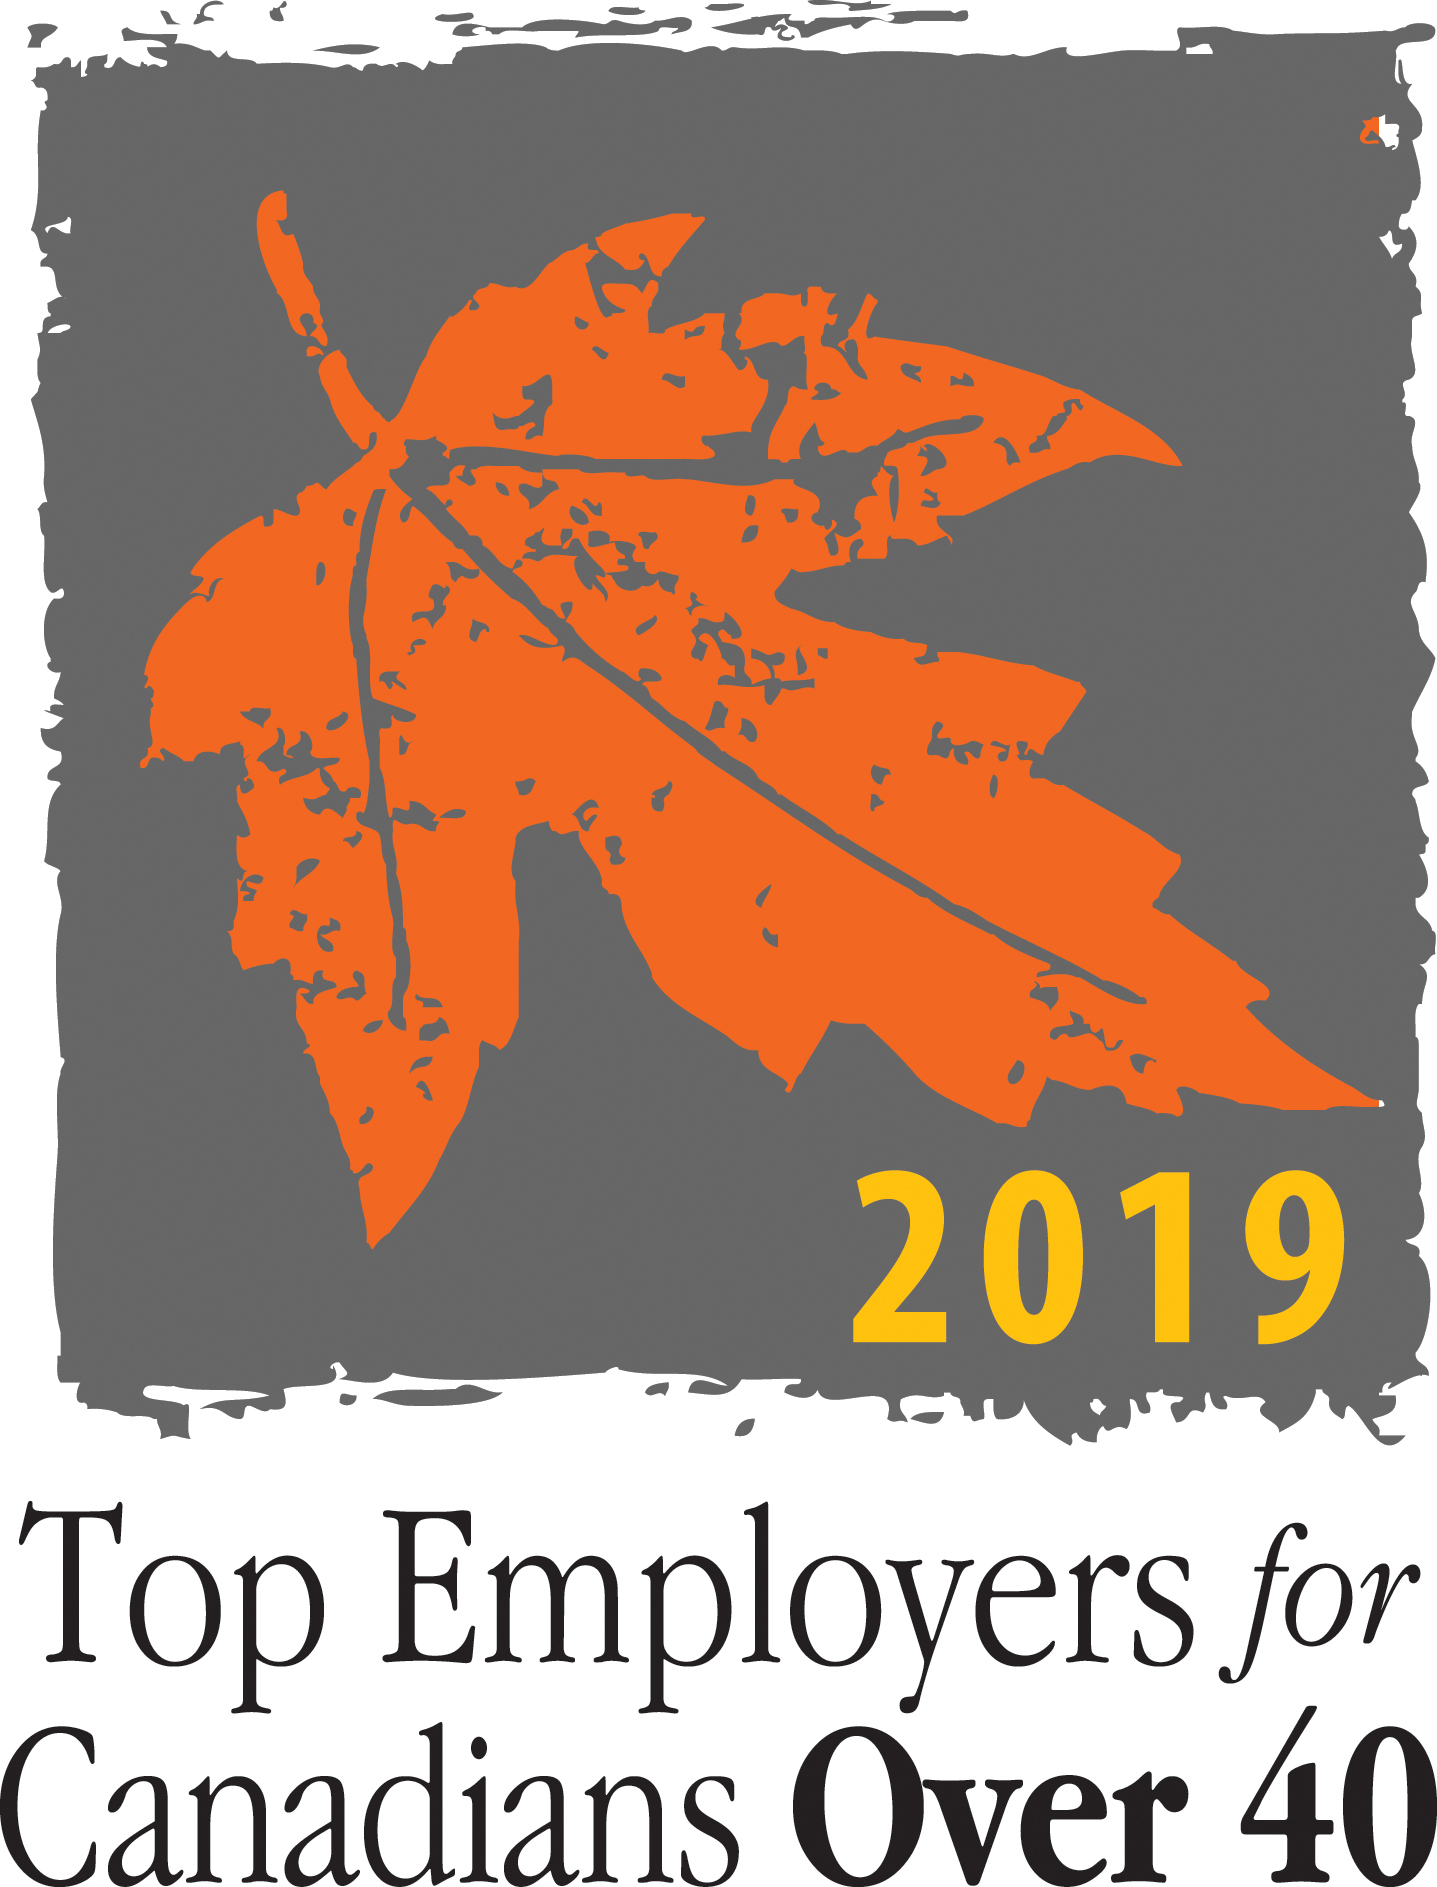 Top employer for people over 40